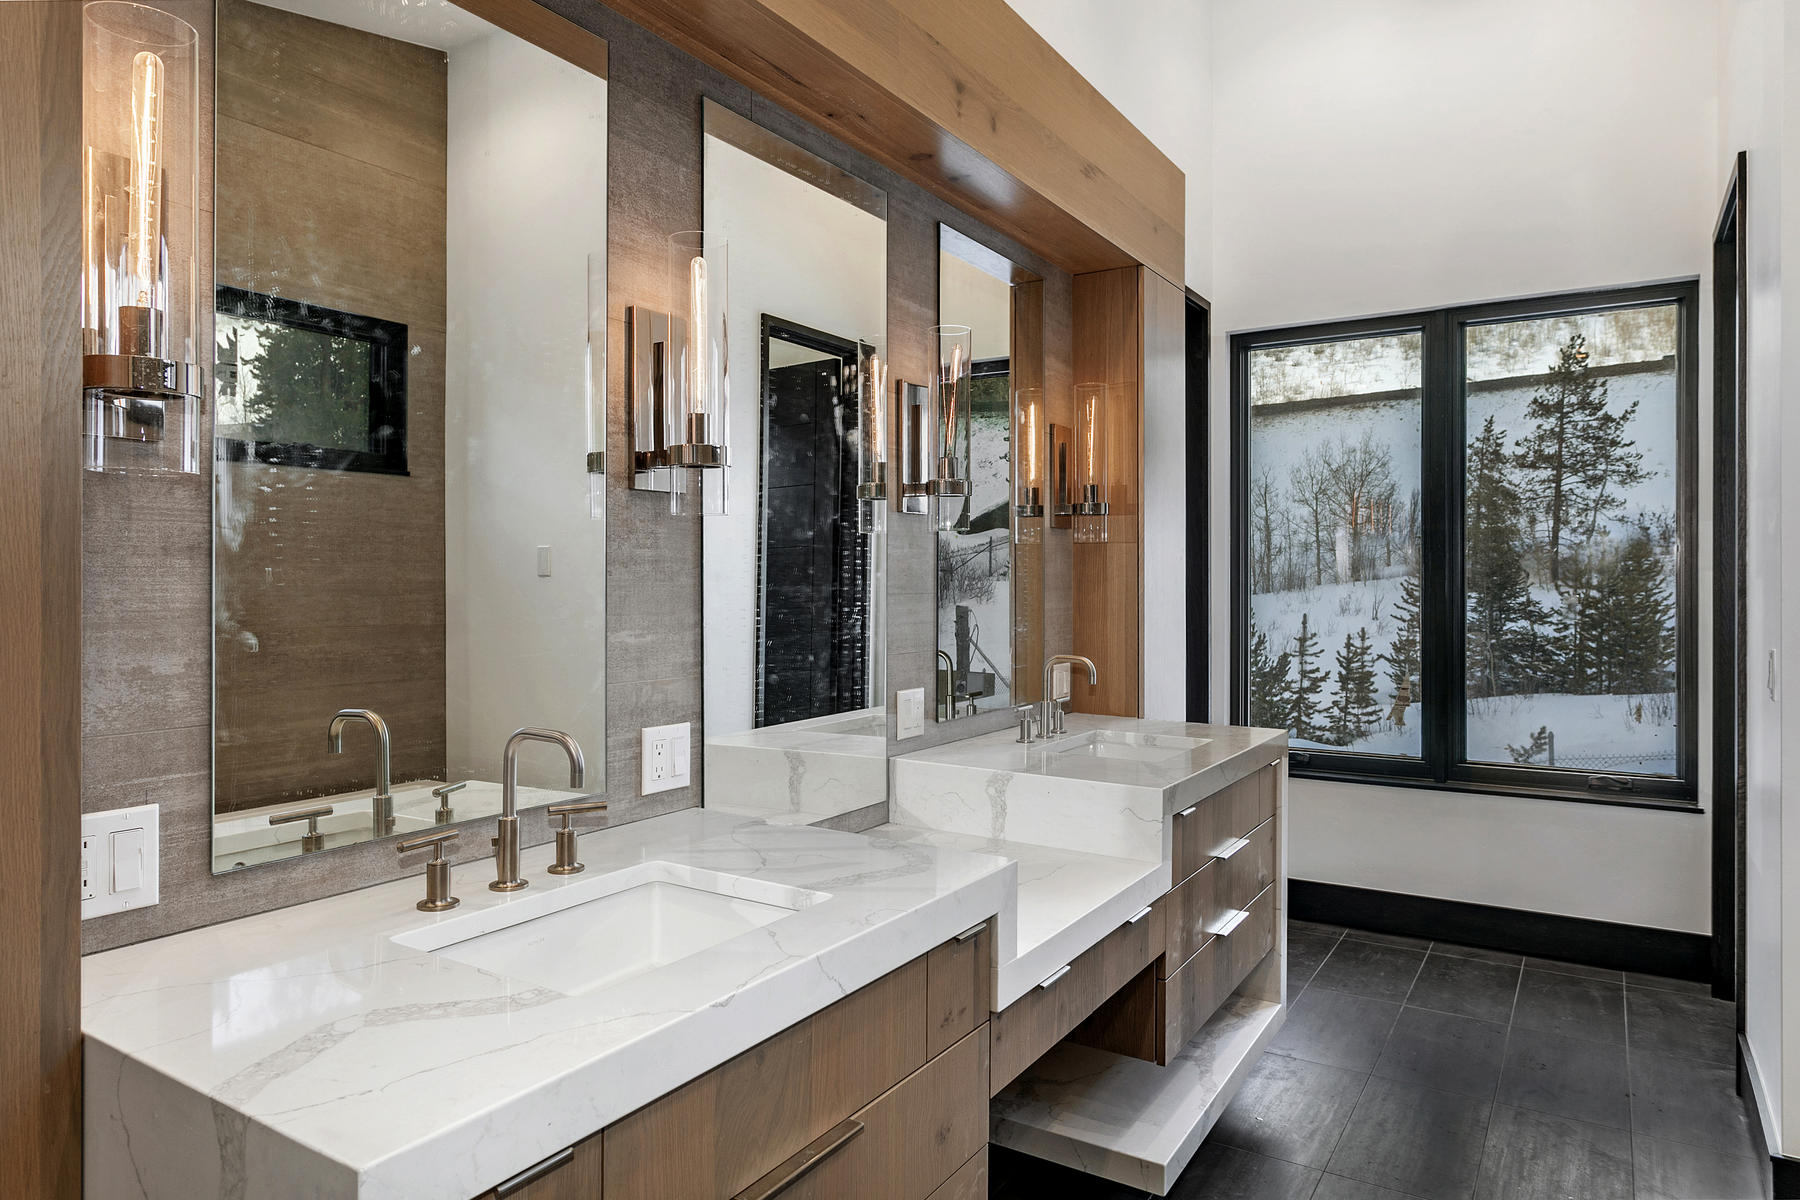 Additional photo for property listing at The future of East Vail architecture and design has arrived! 4271 Columbine Drive Vail, Colorado 81657 United States